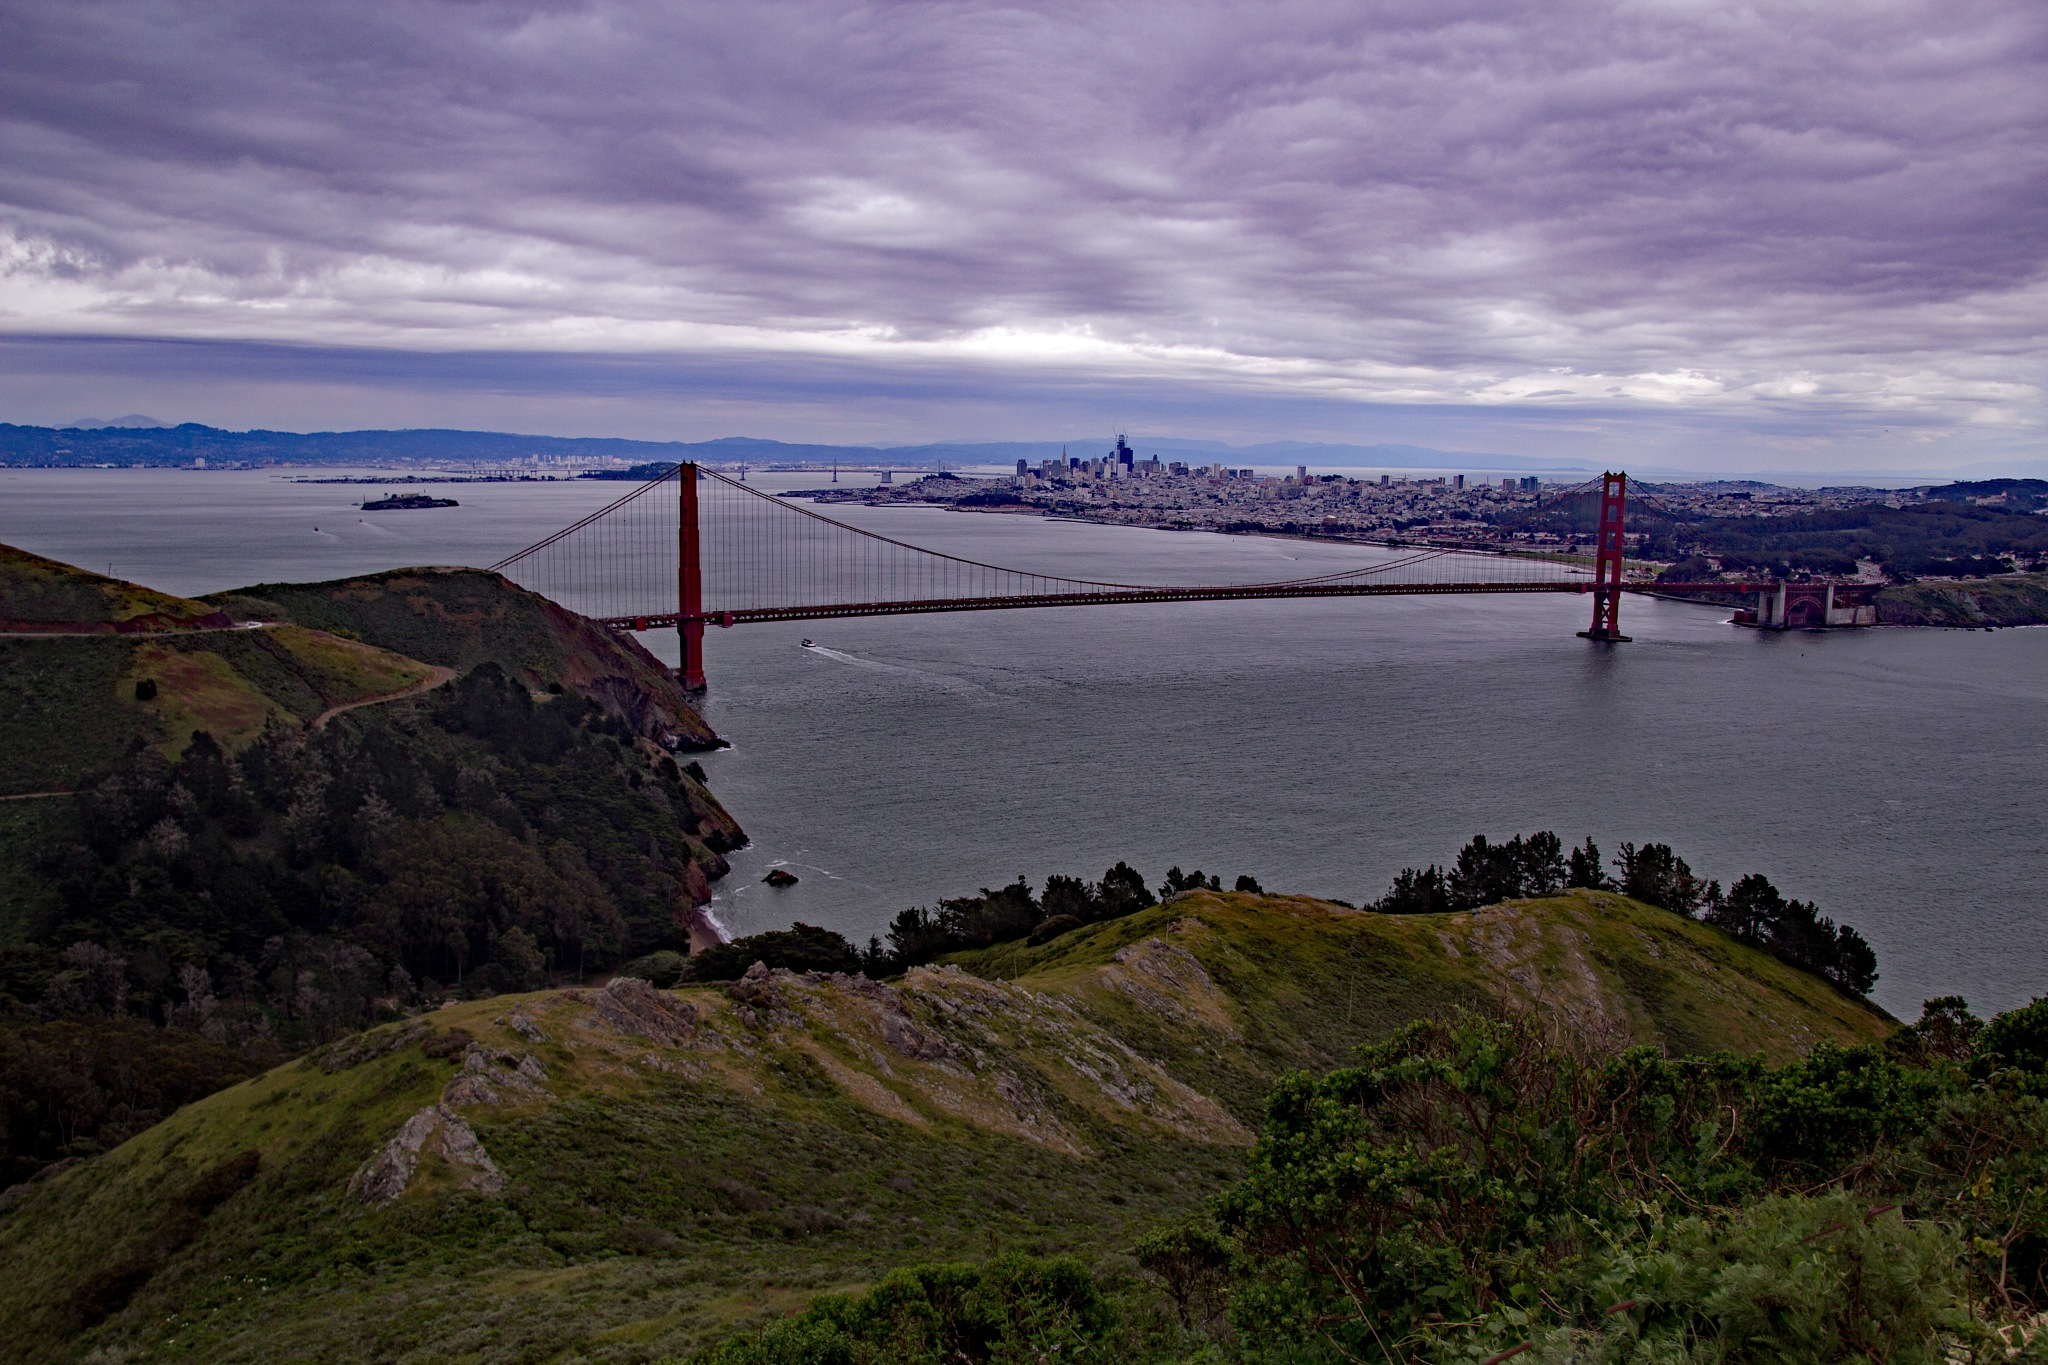 San Francisco on a cloudy day by Mark E. Anderson